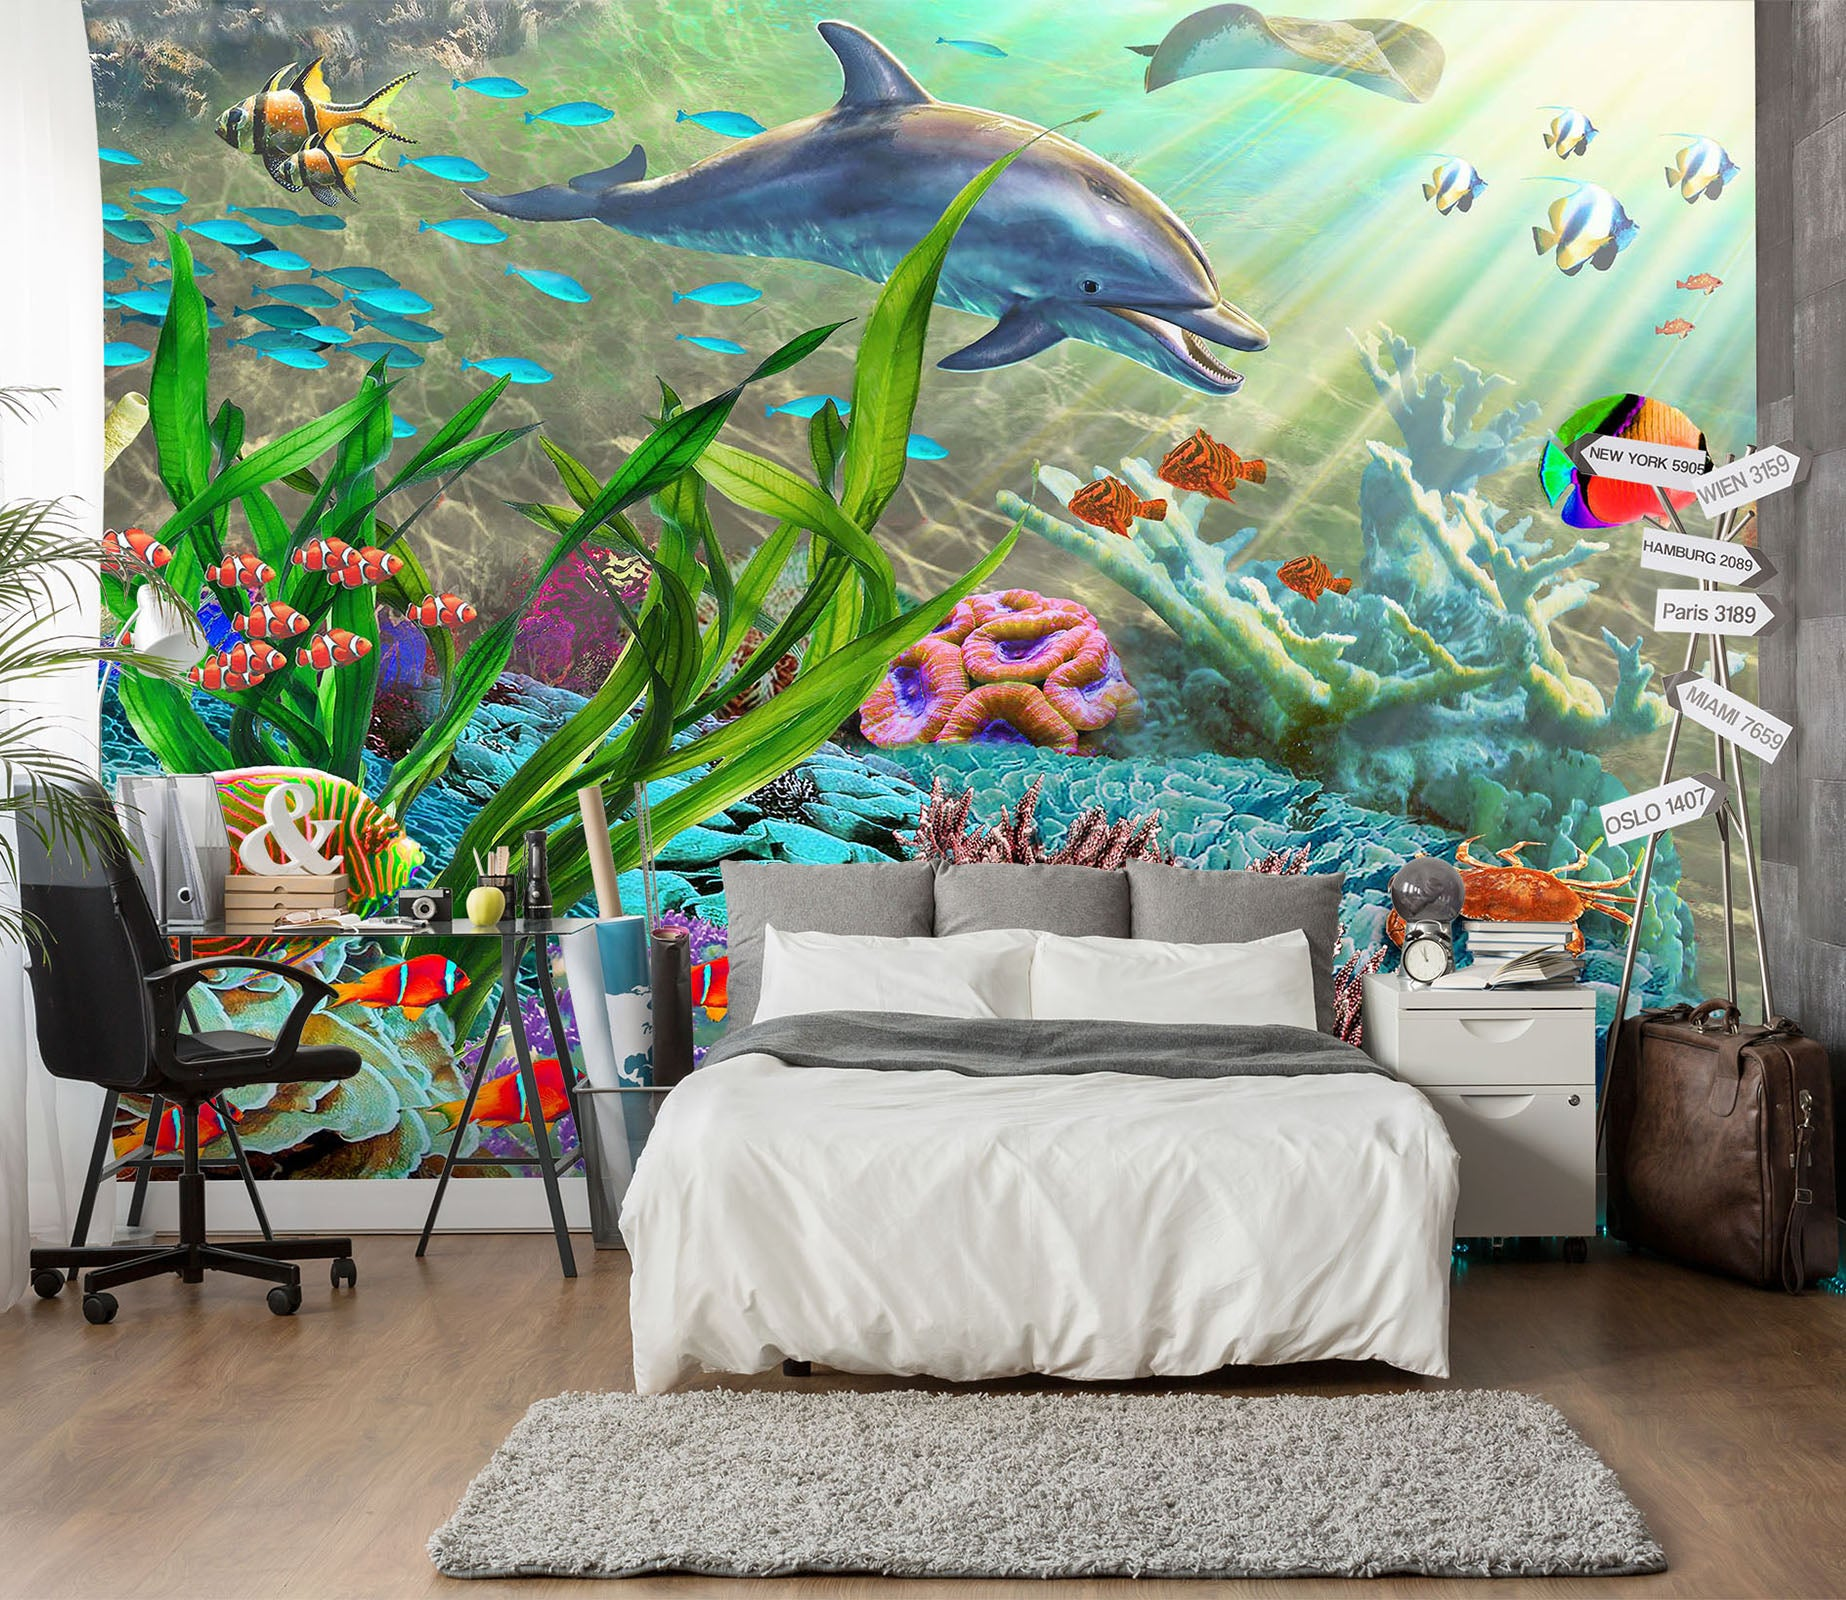 3D Happy Dolphin 1412 Adrian Chesterman Wall Mural Wall Murals